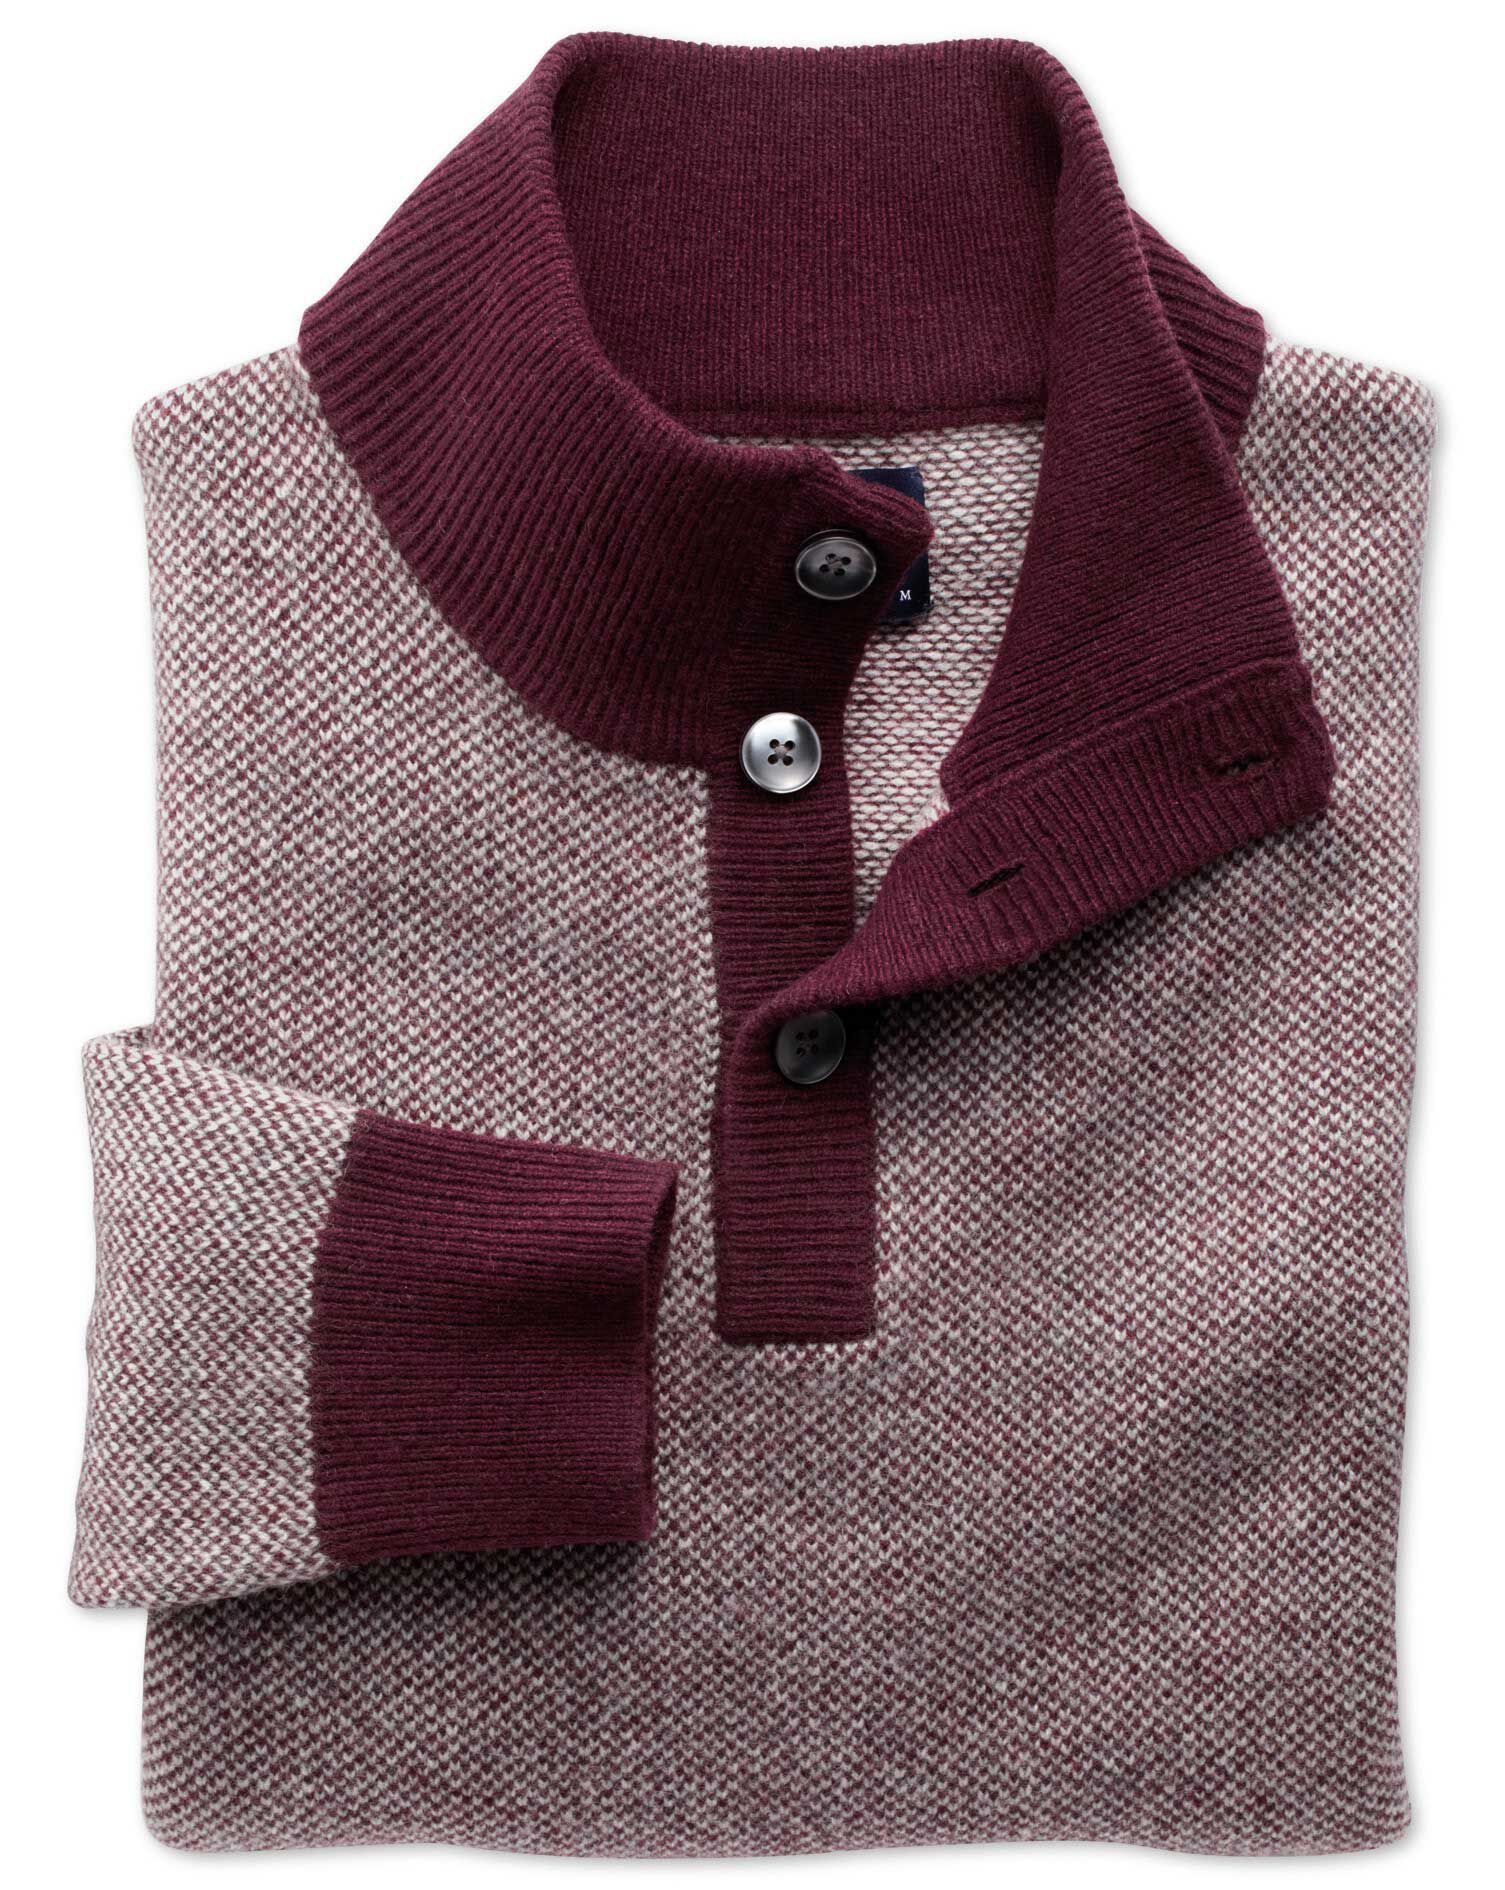 Wine Jacquard Button Neck Wool Jumper Size Large by Charles Tyrwhitt